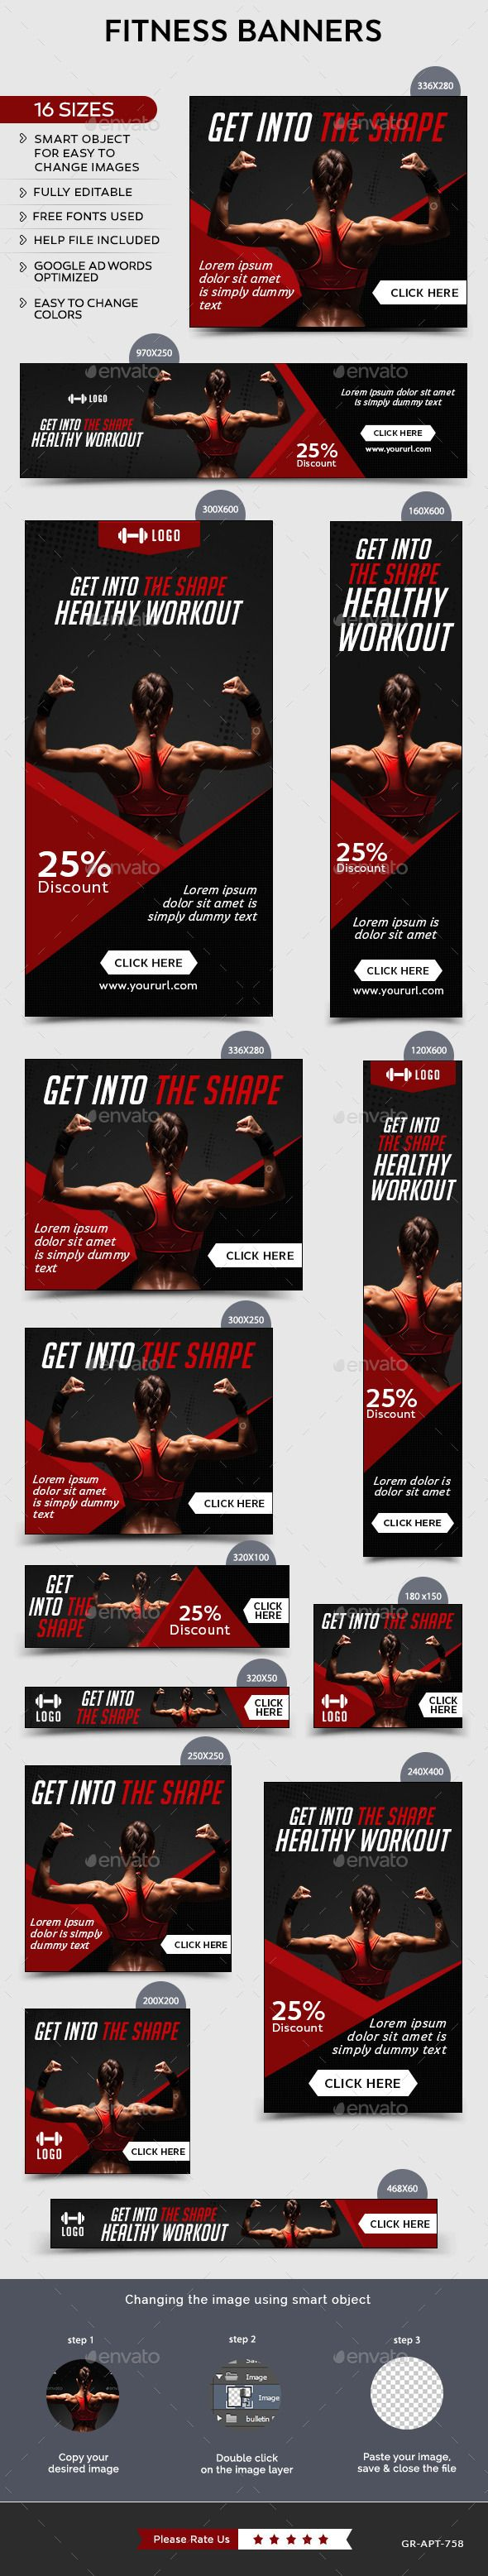 Fitness Banners Template #design Download: http://graphicriver.net/item/fitness-banners/12133644?ref=ksioks